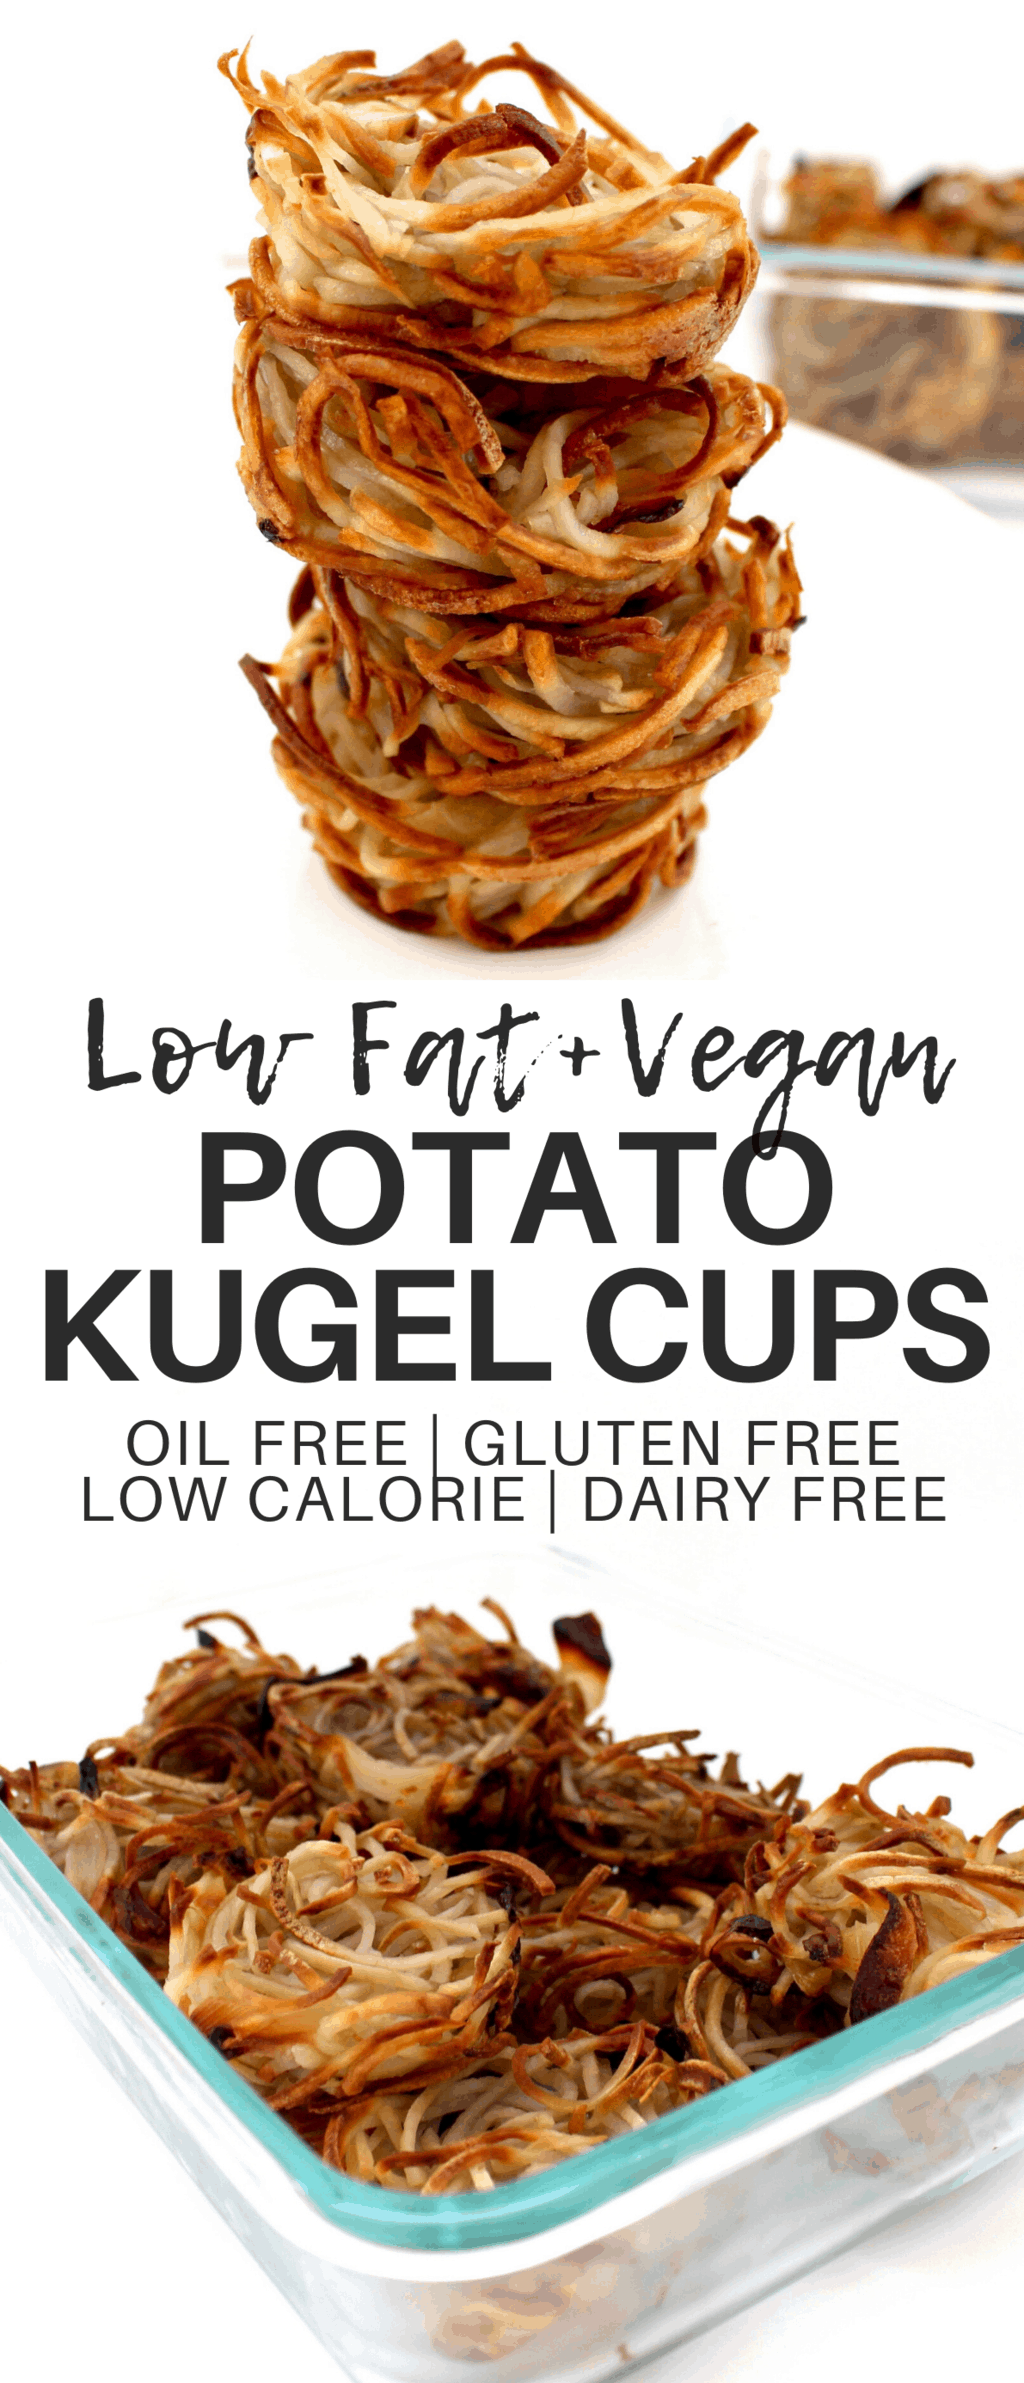 These low-fat & oil-free Vegan Potato Kugel Cups have all the amazing, comforting taste and flavor of traditional potato kugel with a fraction of the calories! Gluten-free & low-calorie - only 37 calories each. Kosher for Passover, too!